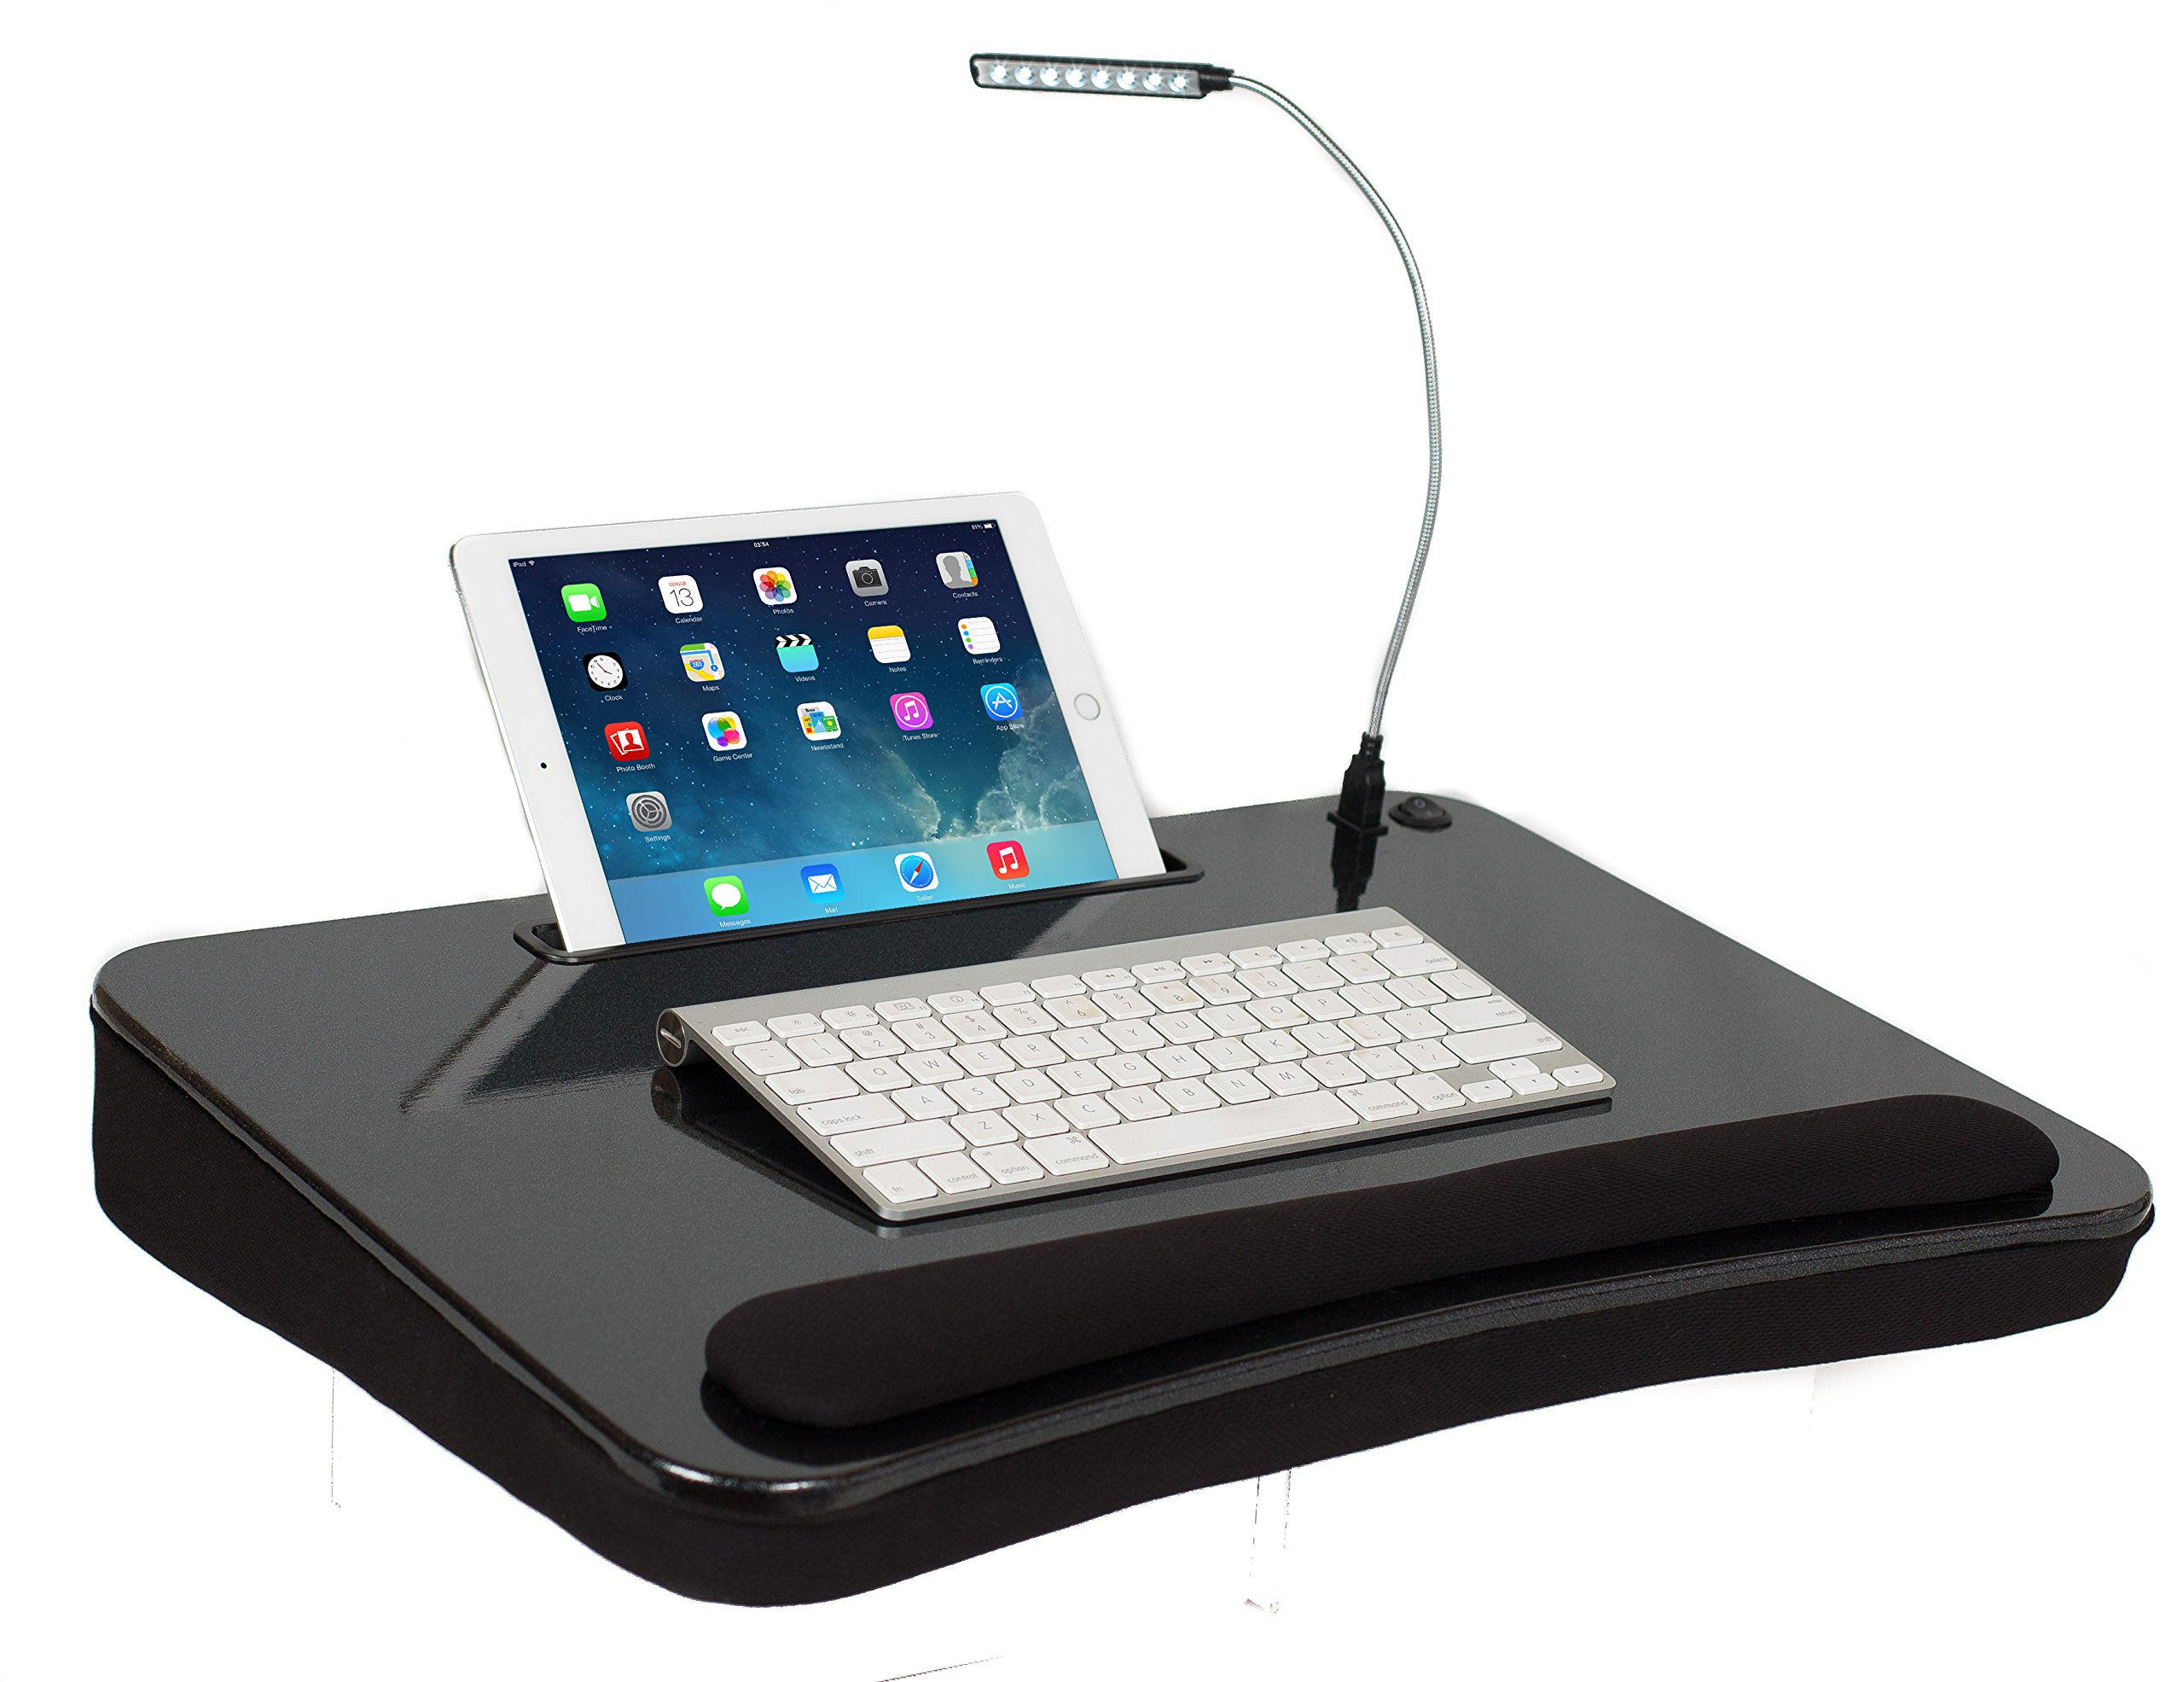 Sofia & Sam XLG Deluxe Lap Desk with Tablet Slot (With USB Light, Black)